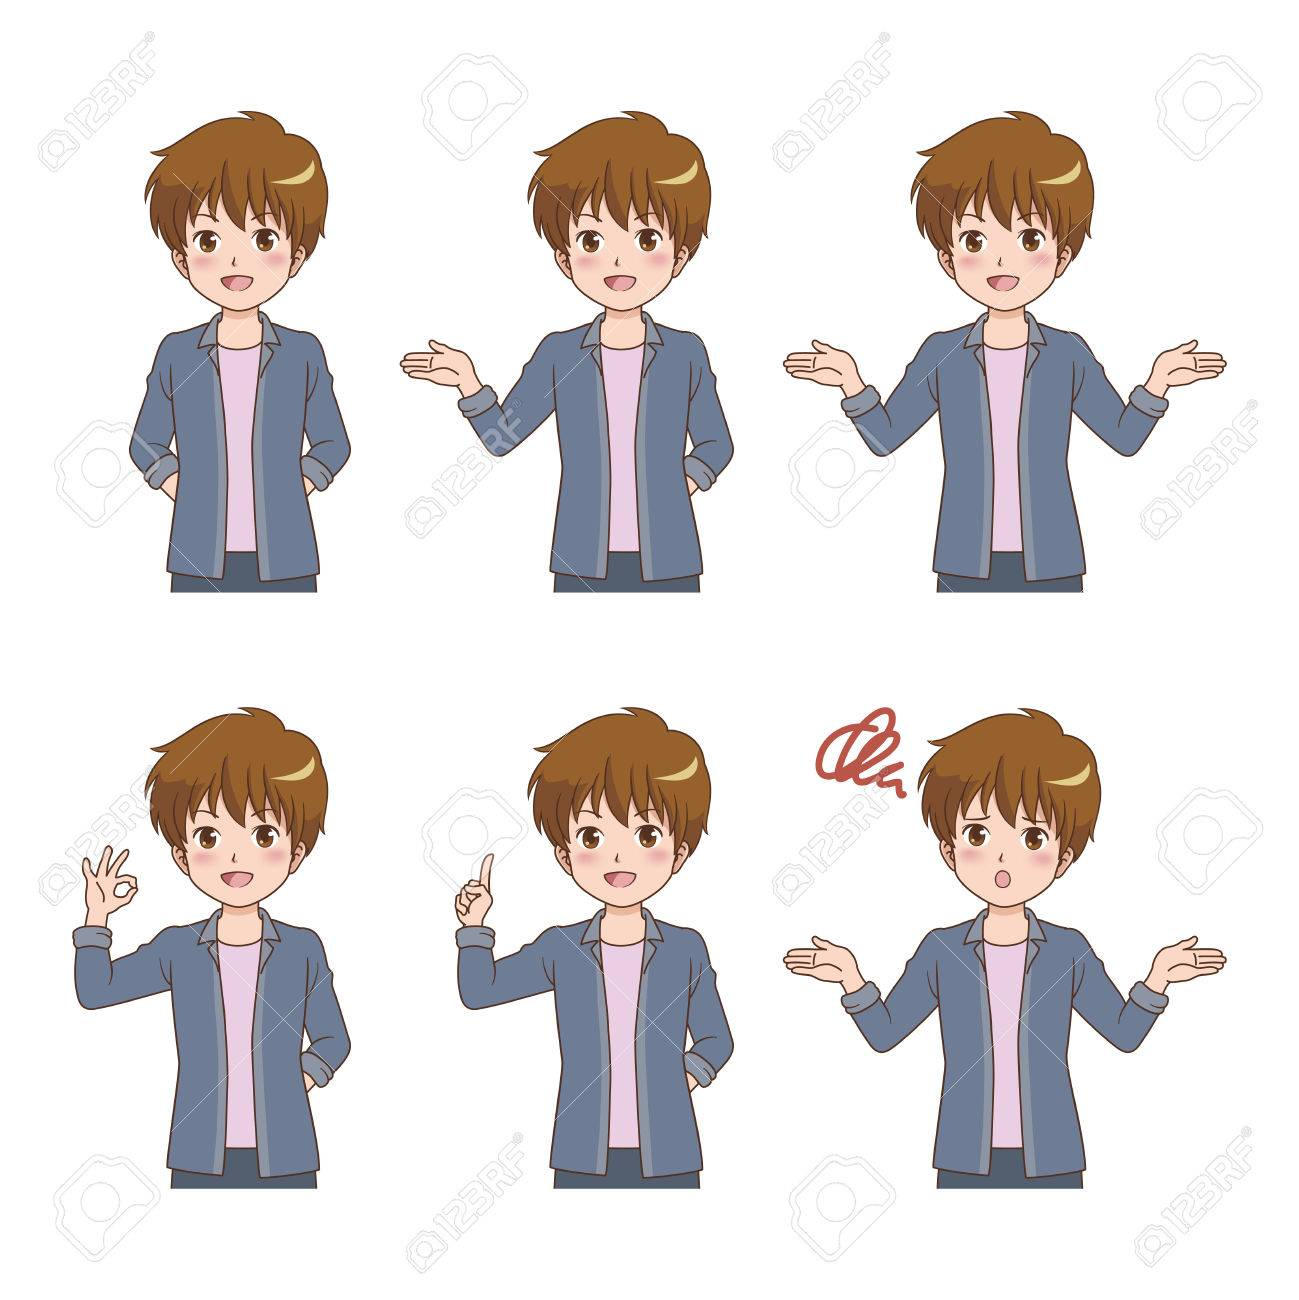 man_pose Stock Vector - 22748883